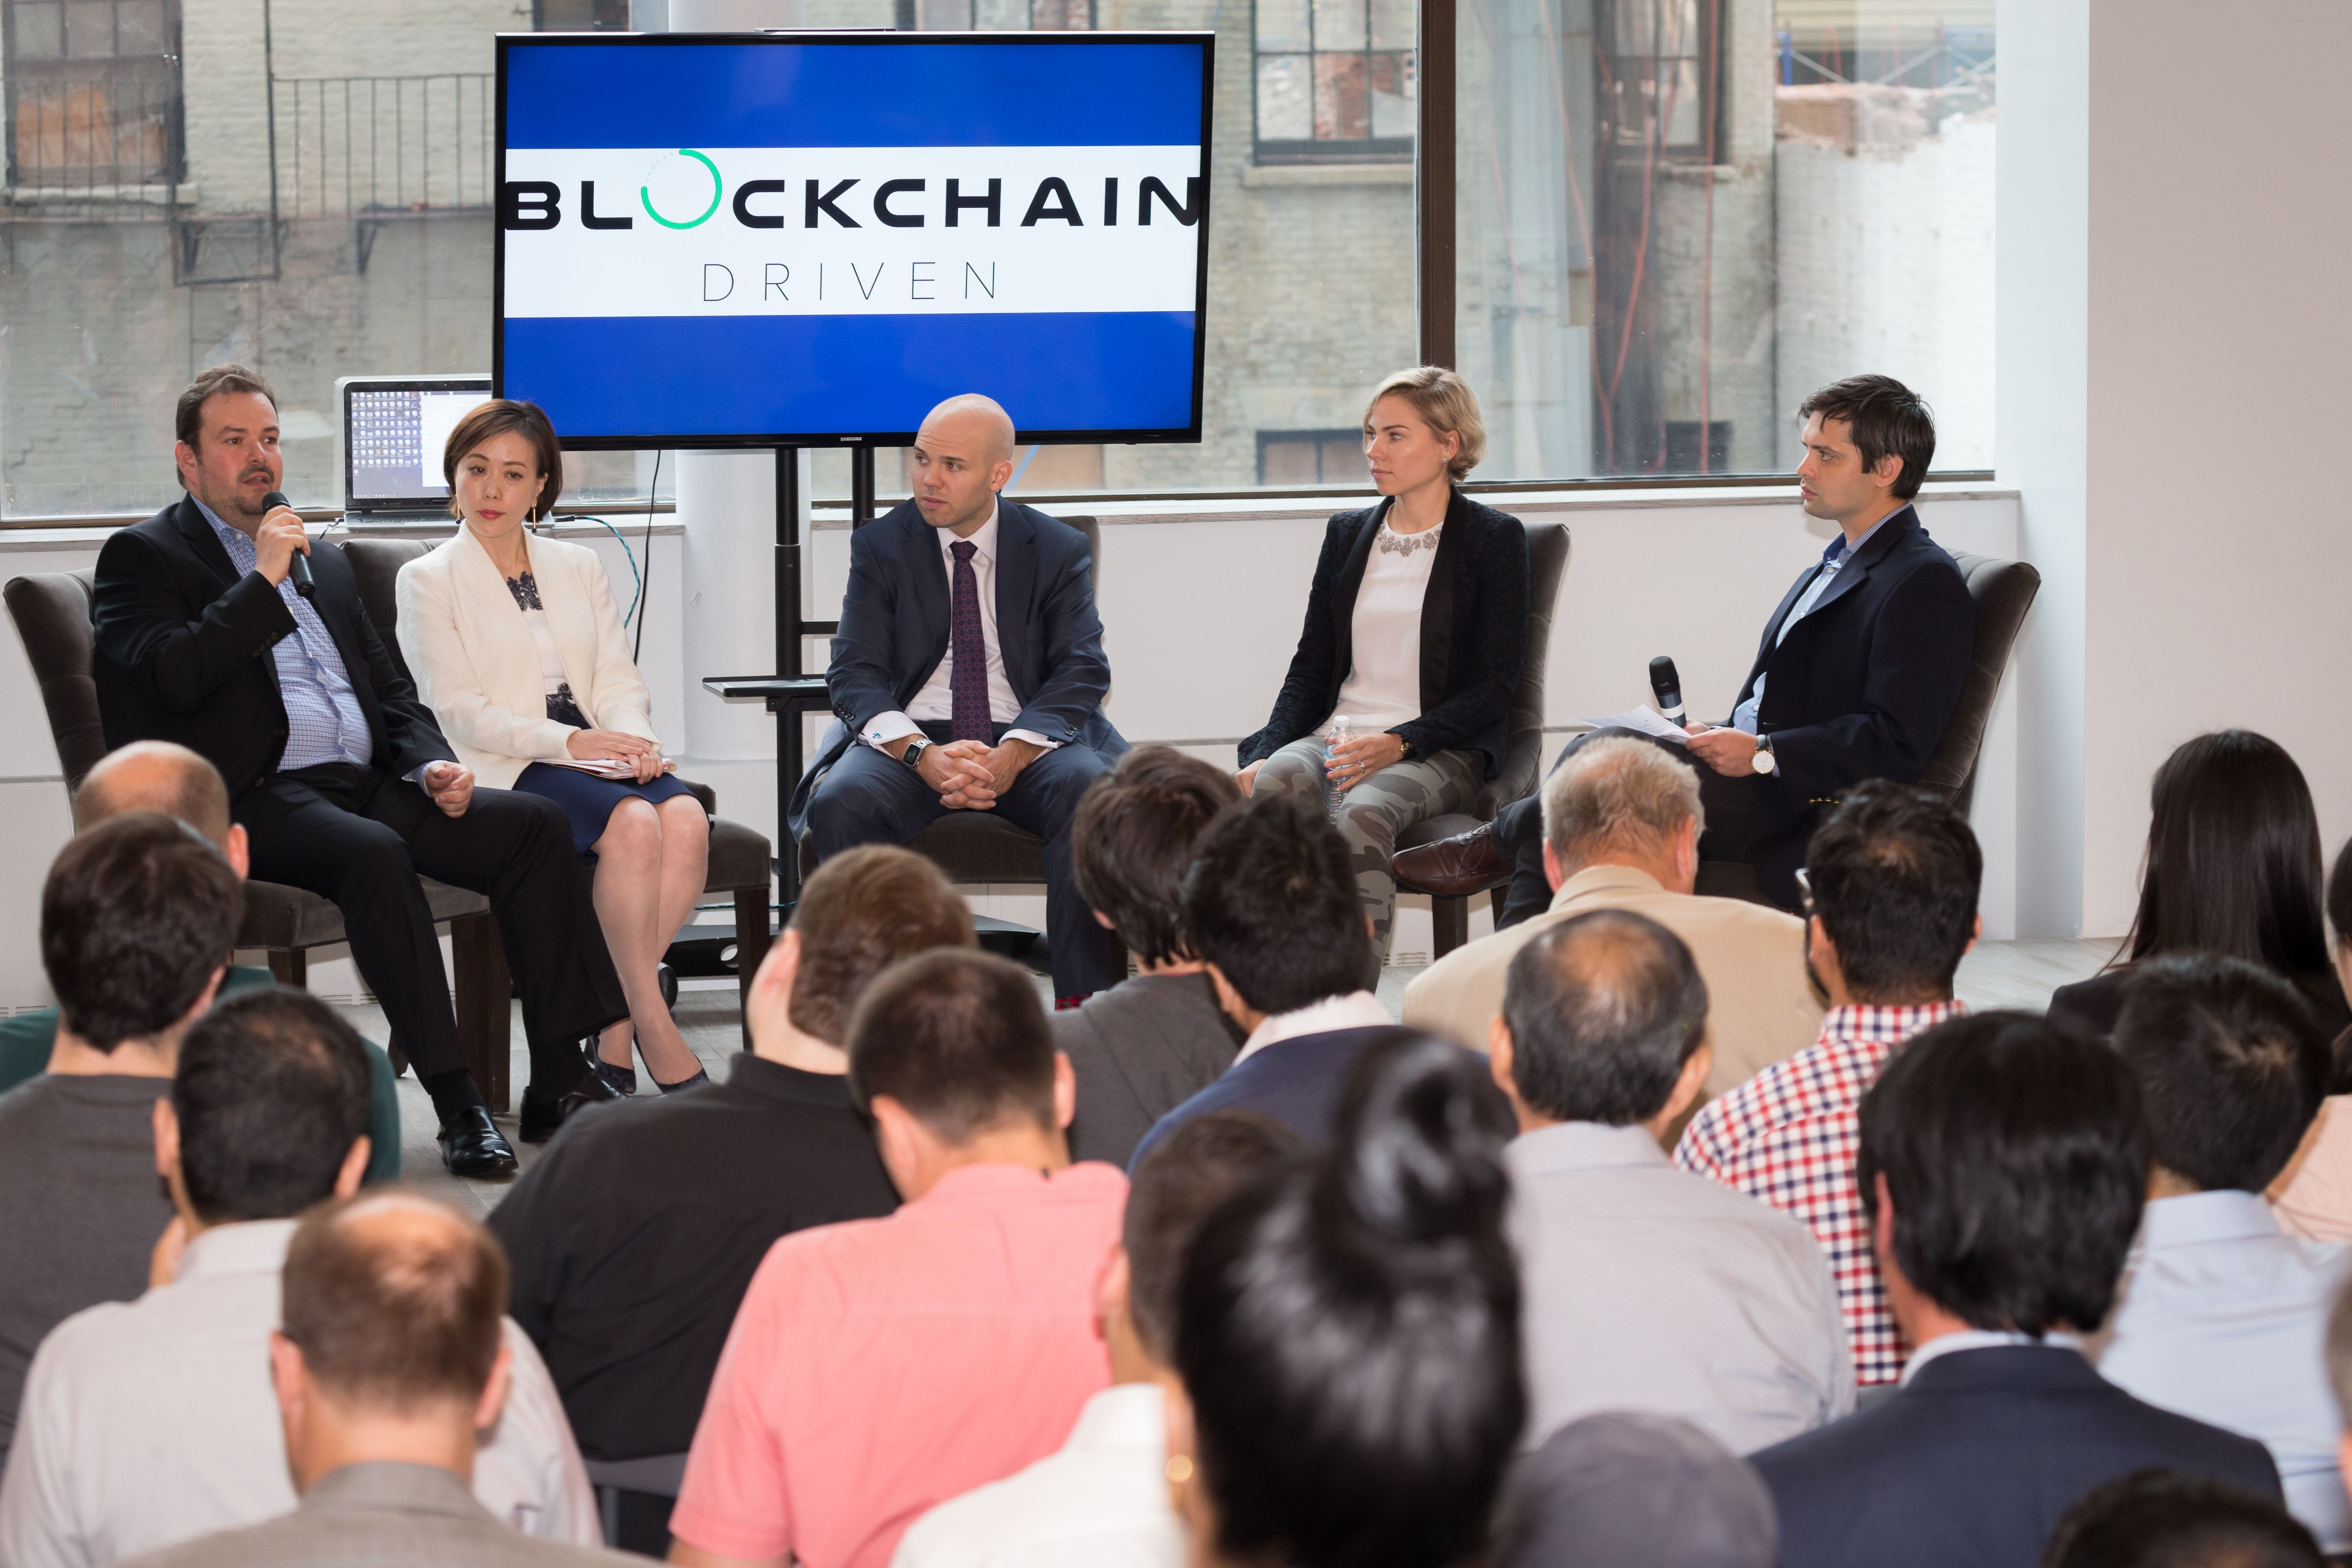 Blockchain NYC .org - Latest Trends & Events (6000+ members)